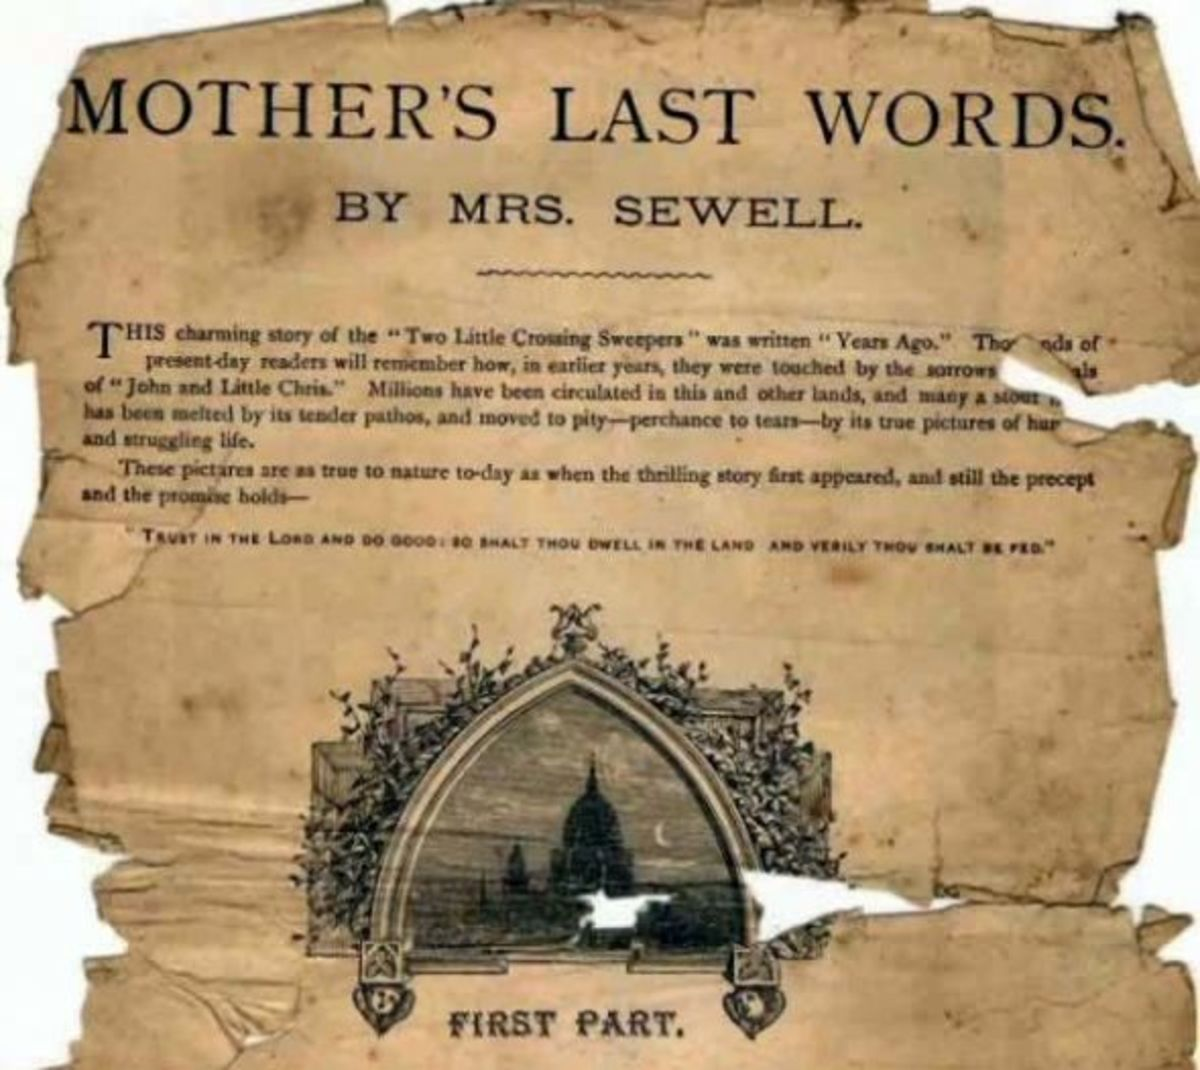 Mother's Last Words by Mary Sewell